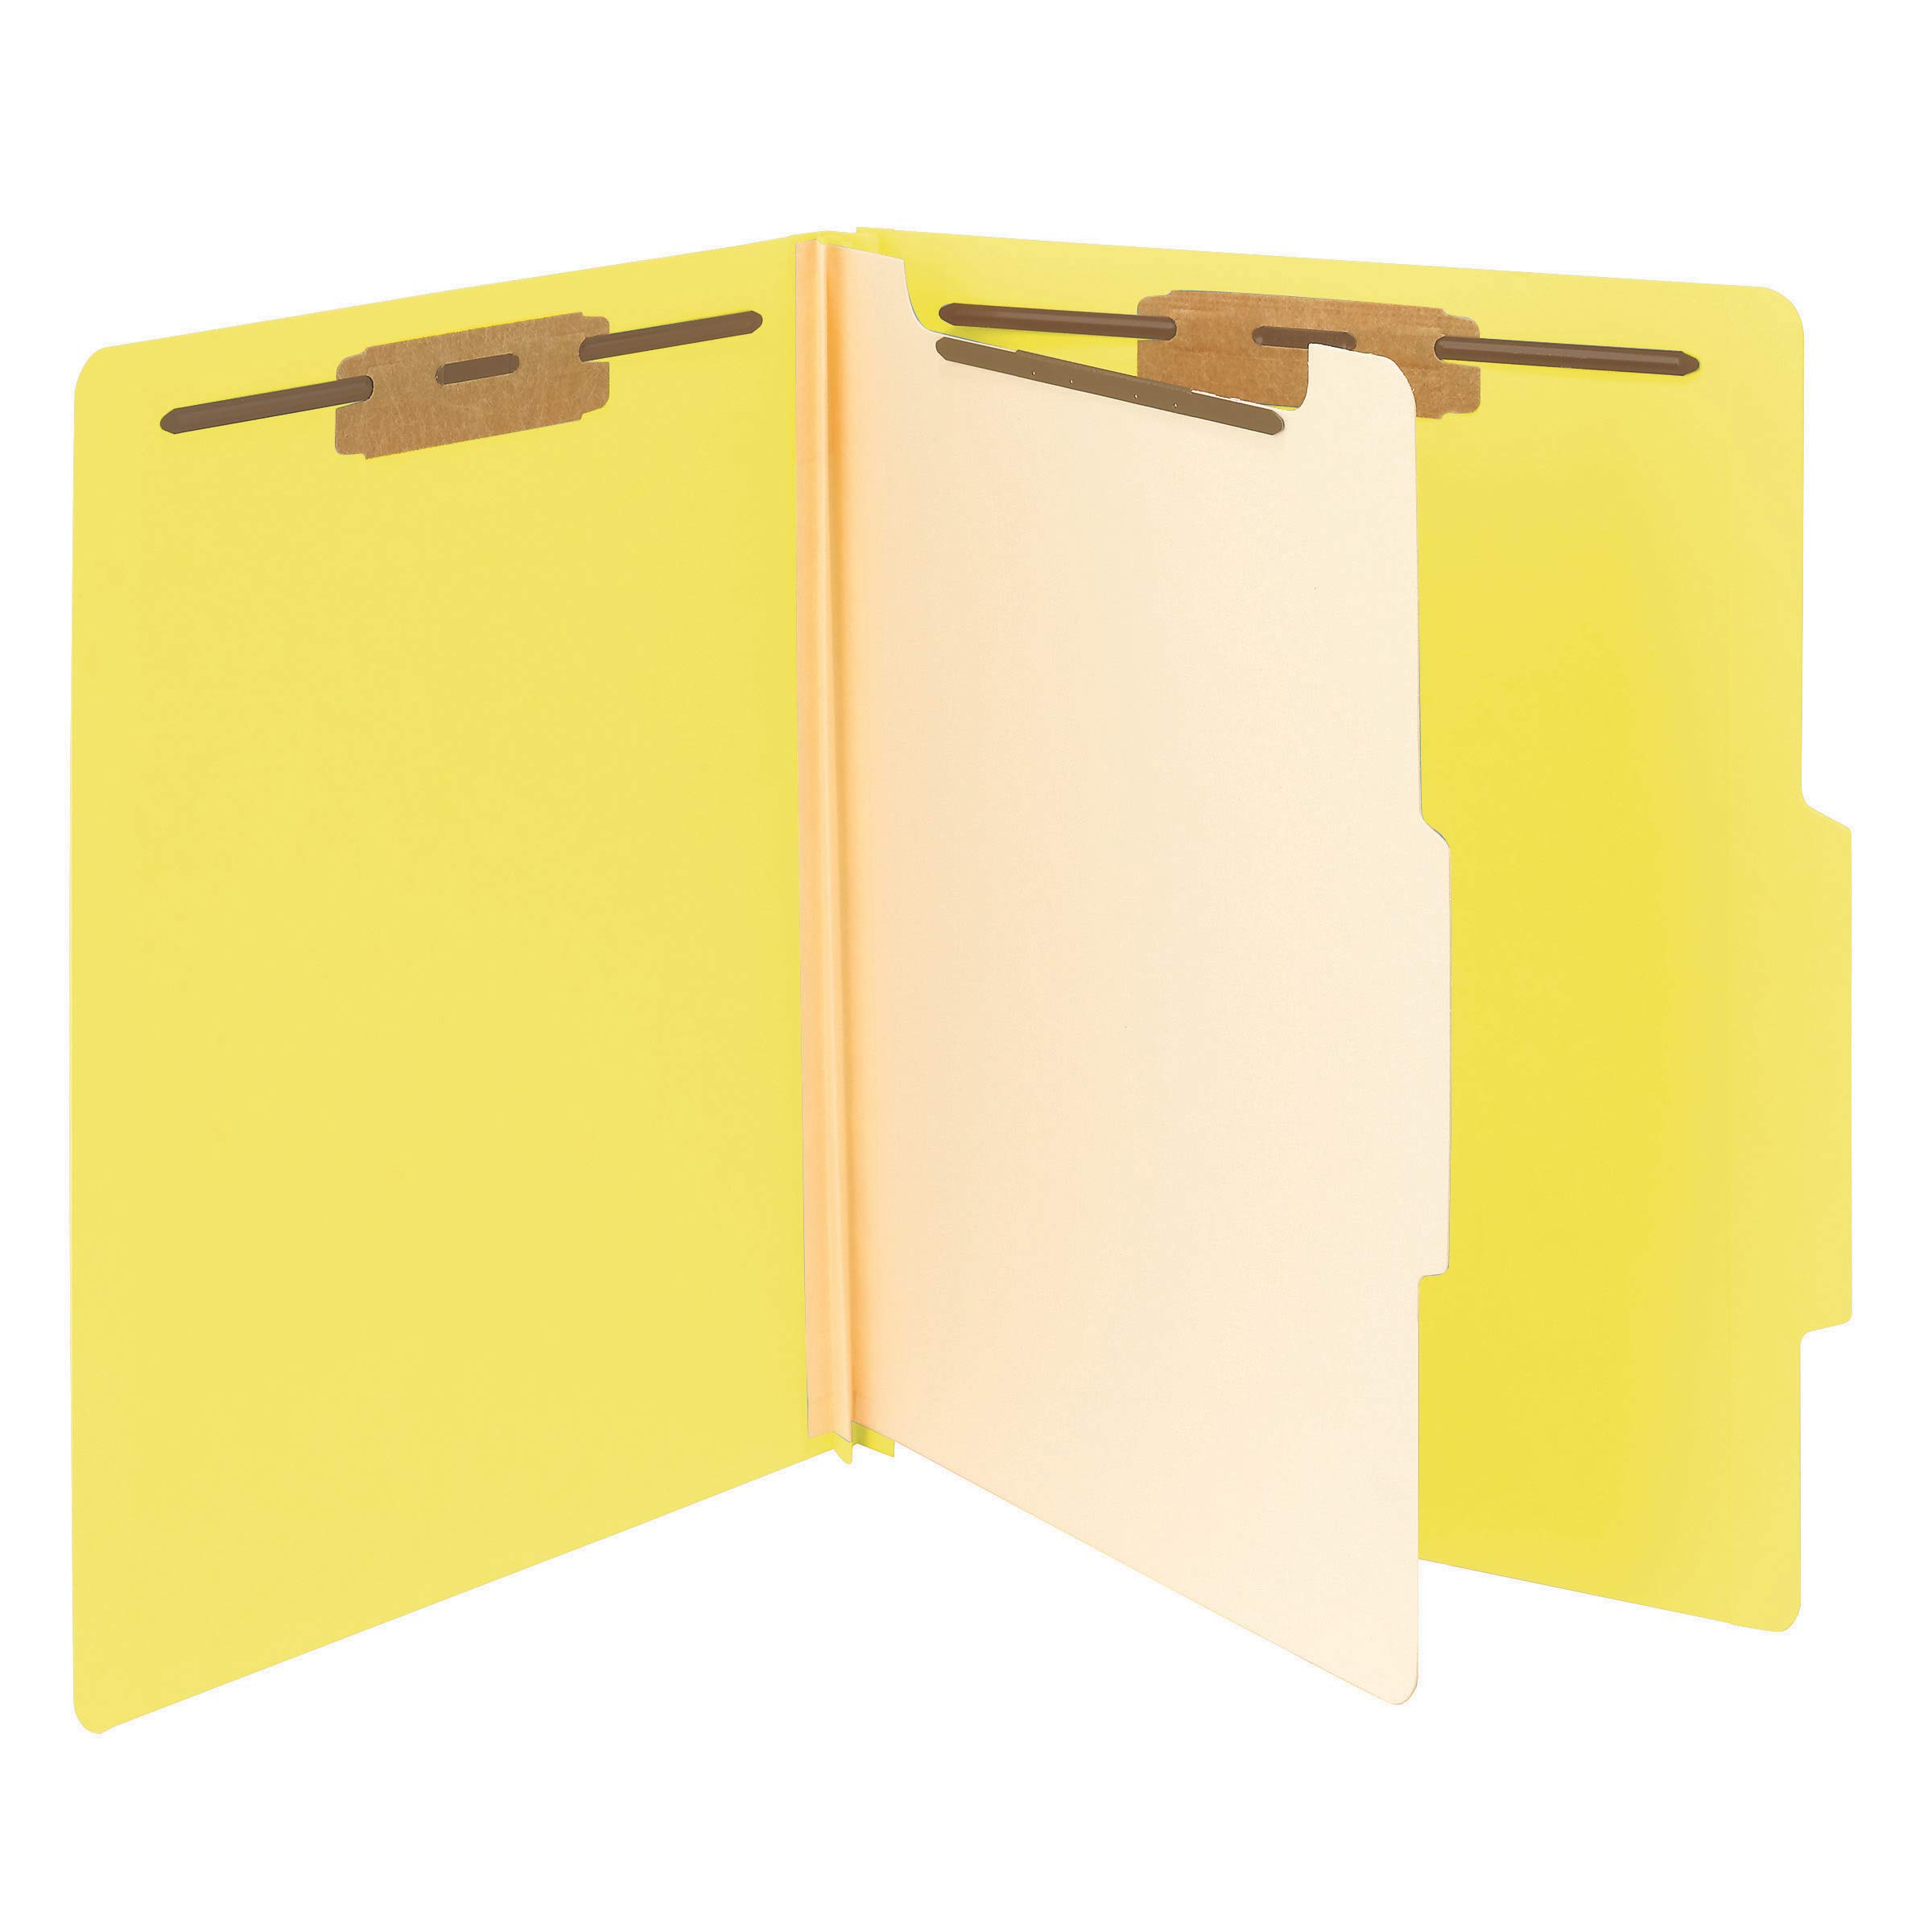 Smead Classification File Folder, 1 Divider, 2'' Expansion, 2/5-Cut Tab, Letter Size, Yellow, 10 per Box (13704) by Smead